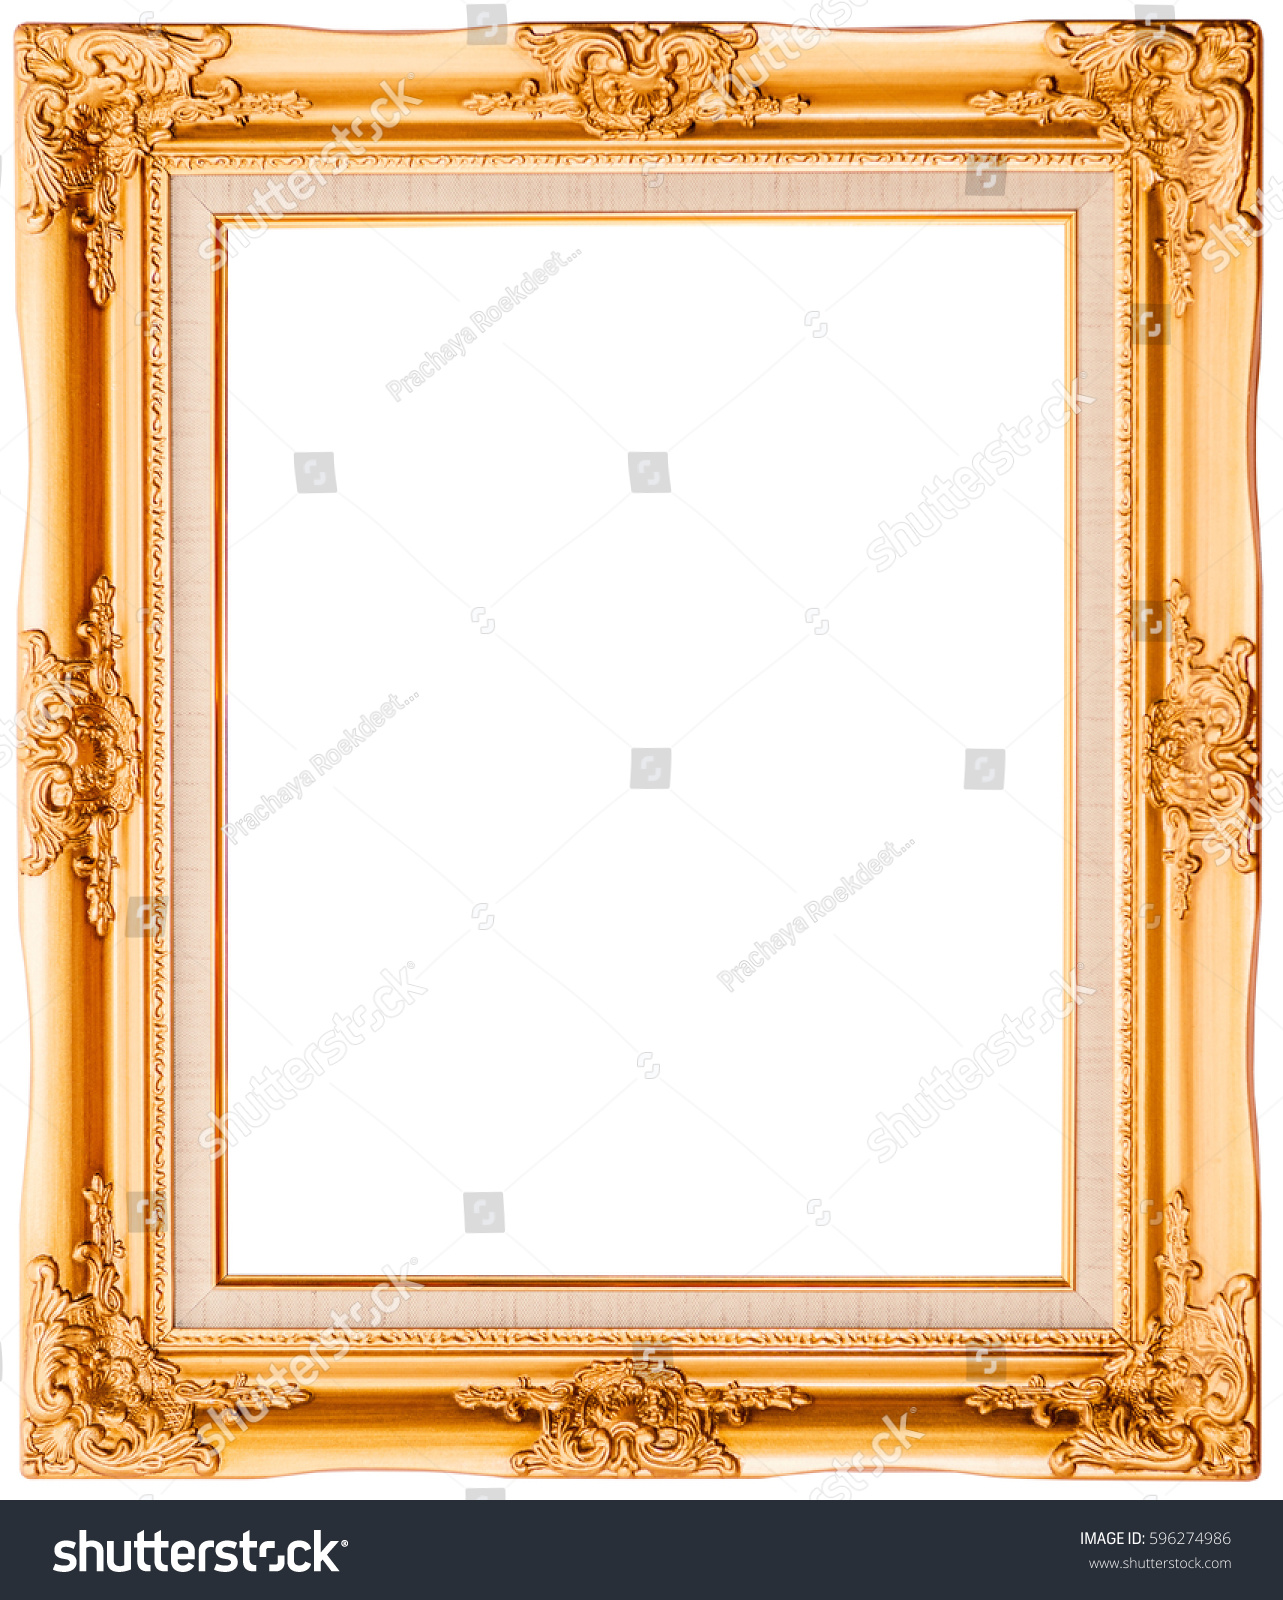 Antique Golden Frame Isolated On White Stock Photo 596274986 ...